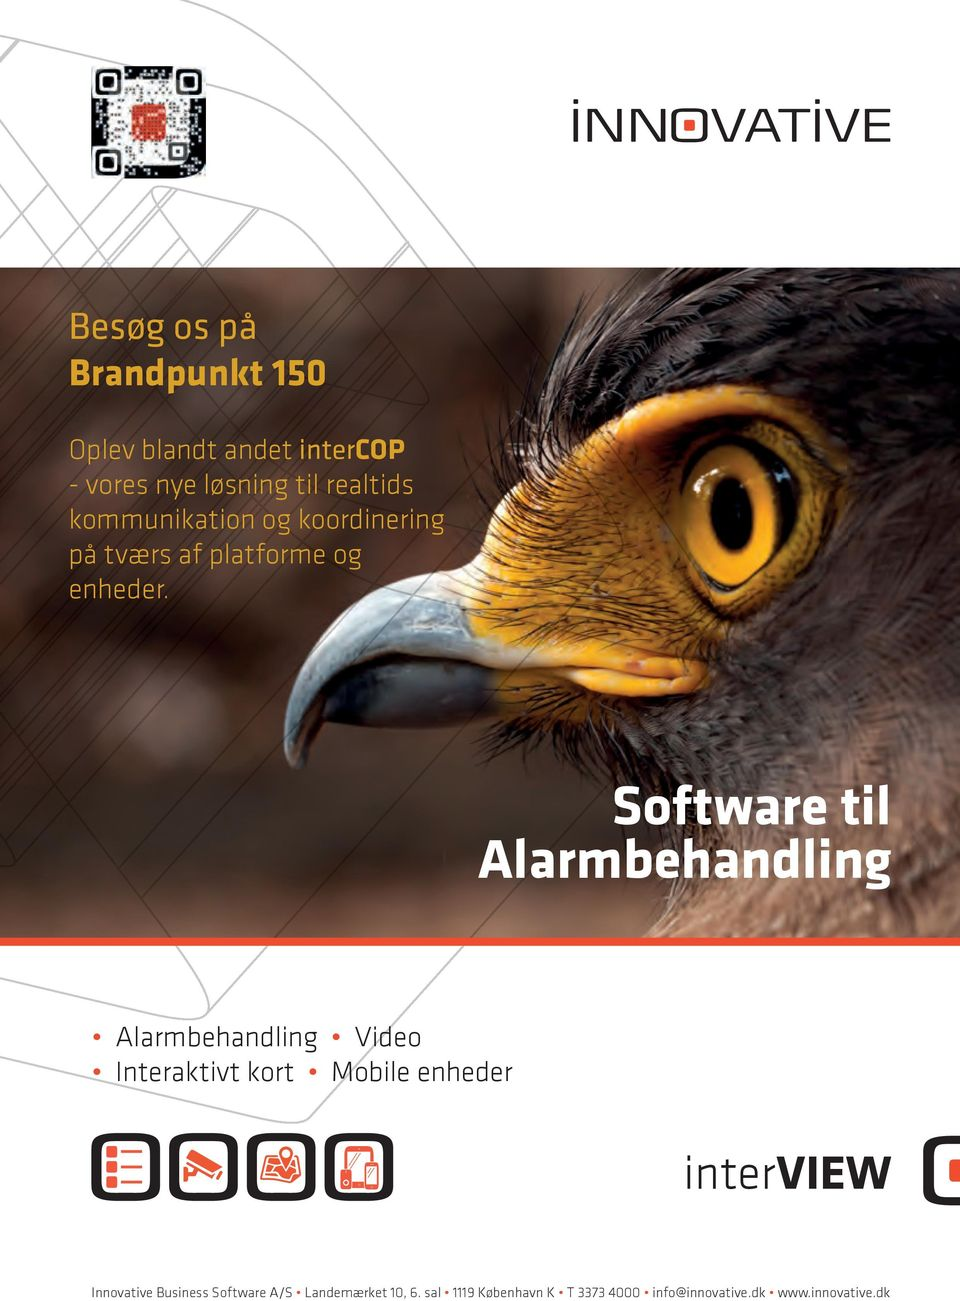 Software til Alarmbehandling Alarmbehandling Video Interaktivt kort Mobile enheder